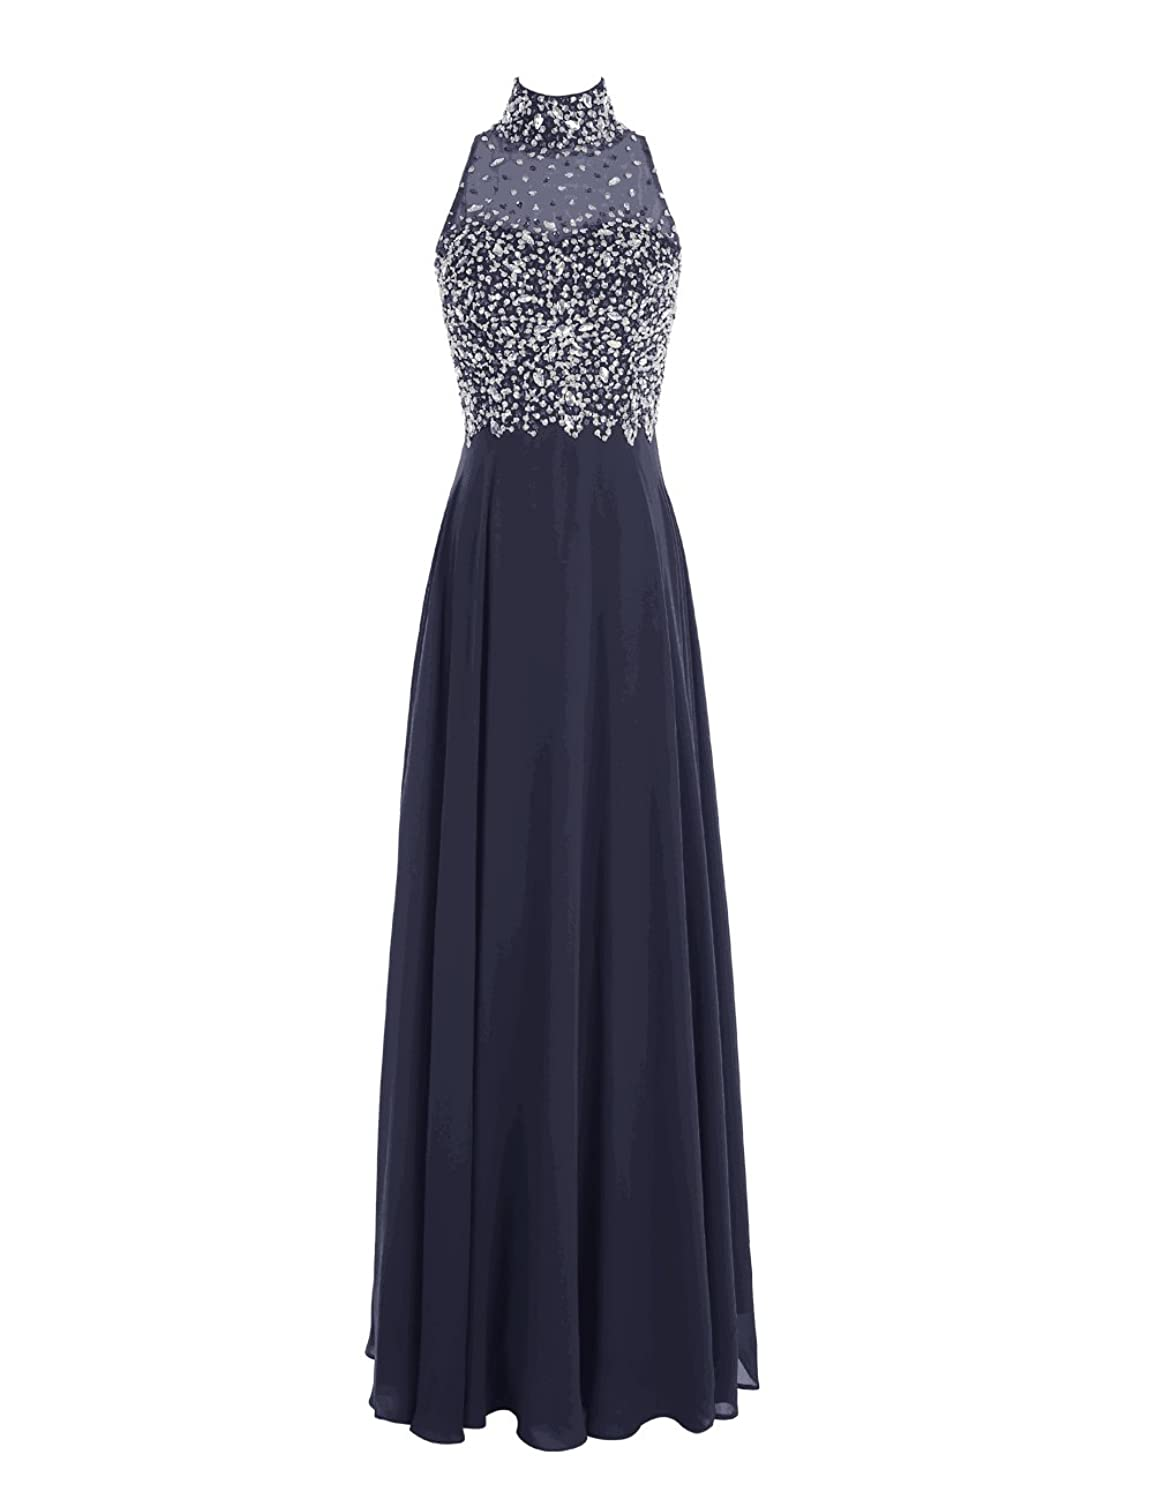 Dresstells? Long Chiffon Open Back Prom Dress With Beading Evening Party Wear